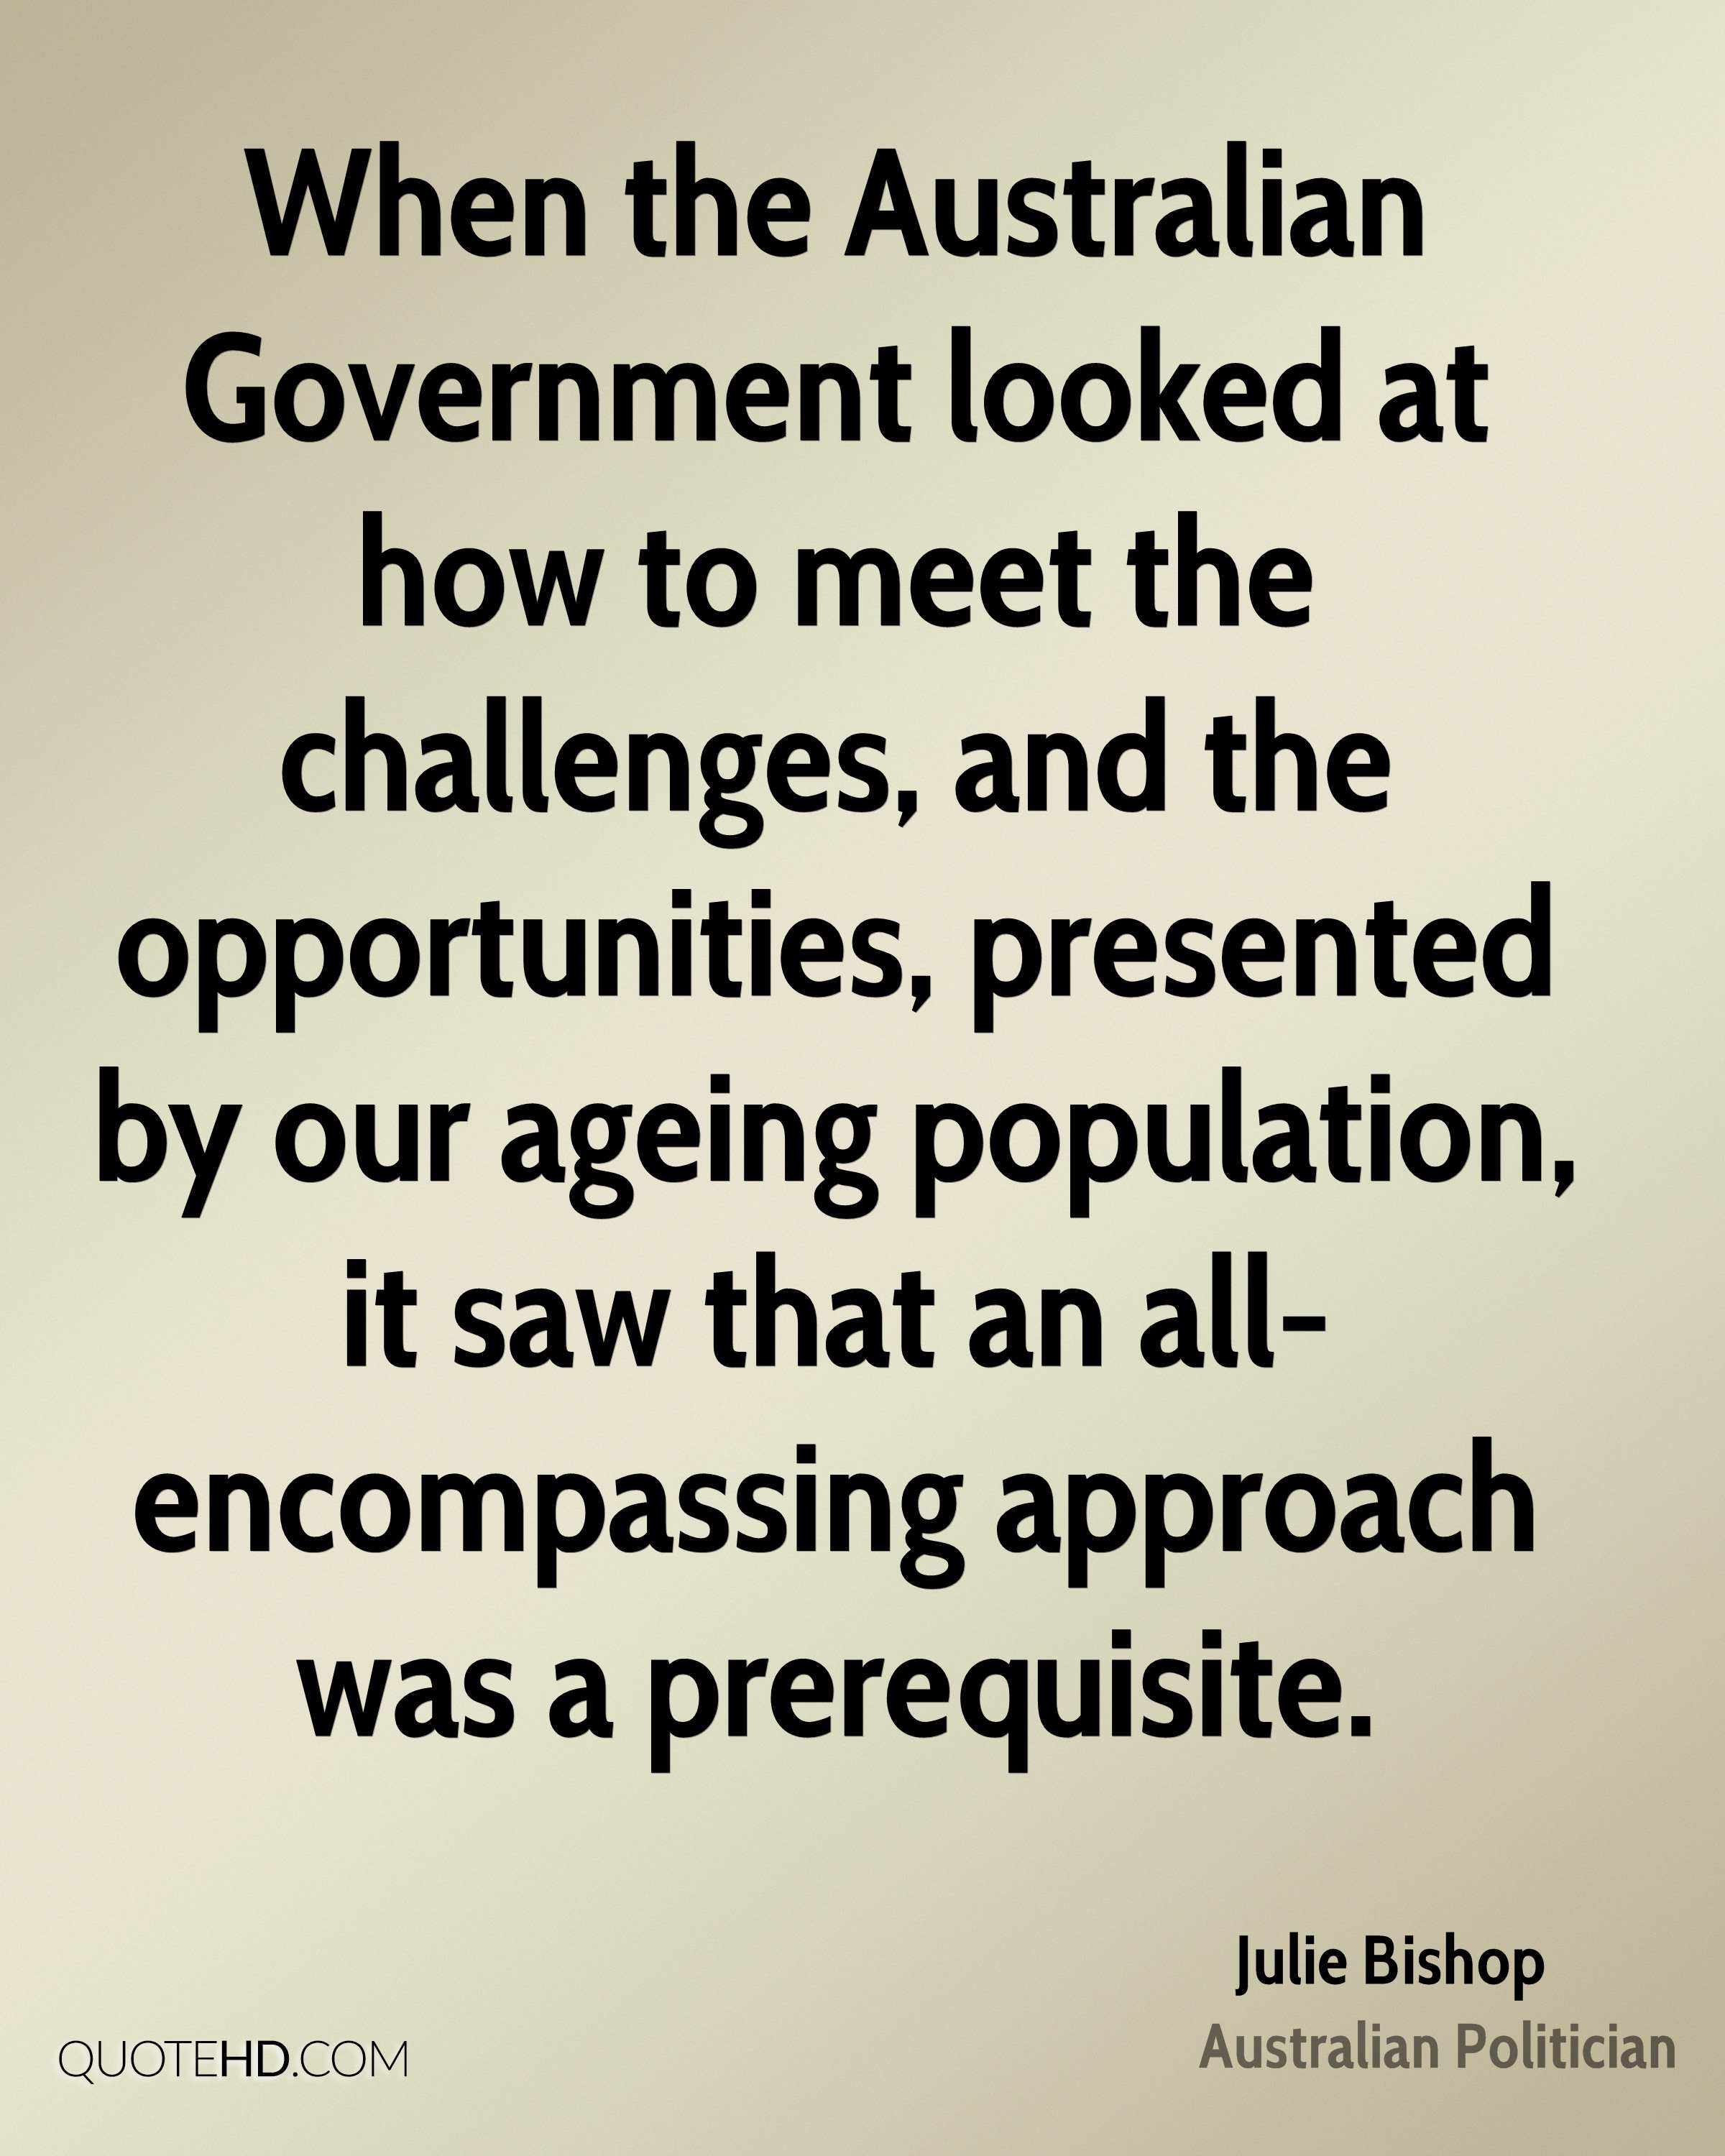 When the Australian Government looked at how to meet the challenges, and the opportunities, presented by our ageing population, it saw that an all-encompassing approach was a prerequisite.